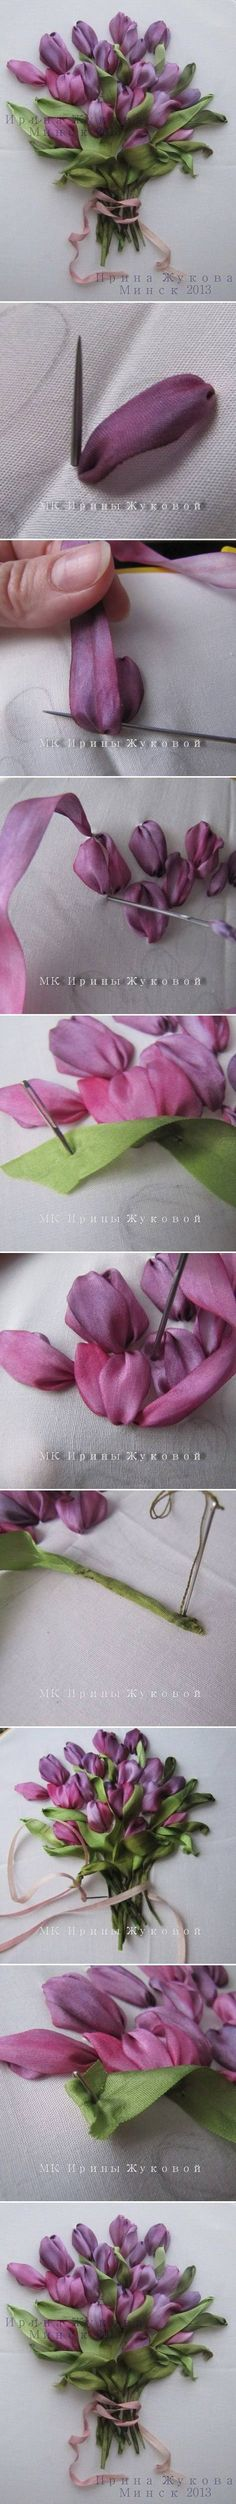 DIY Embroidery Ribbon Flower DIY Embroidery Ribbon Flower for Mother's Day!!!